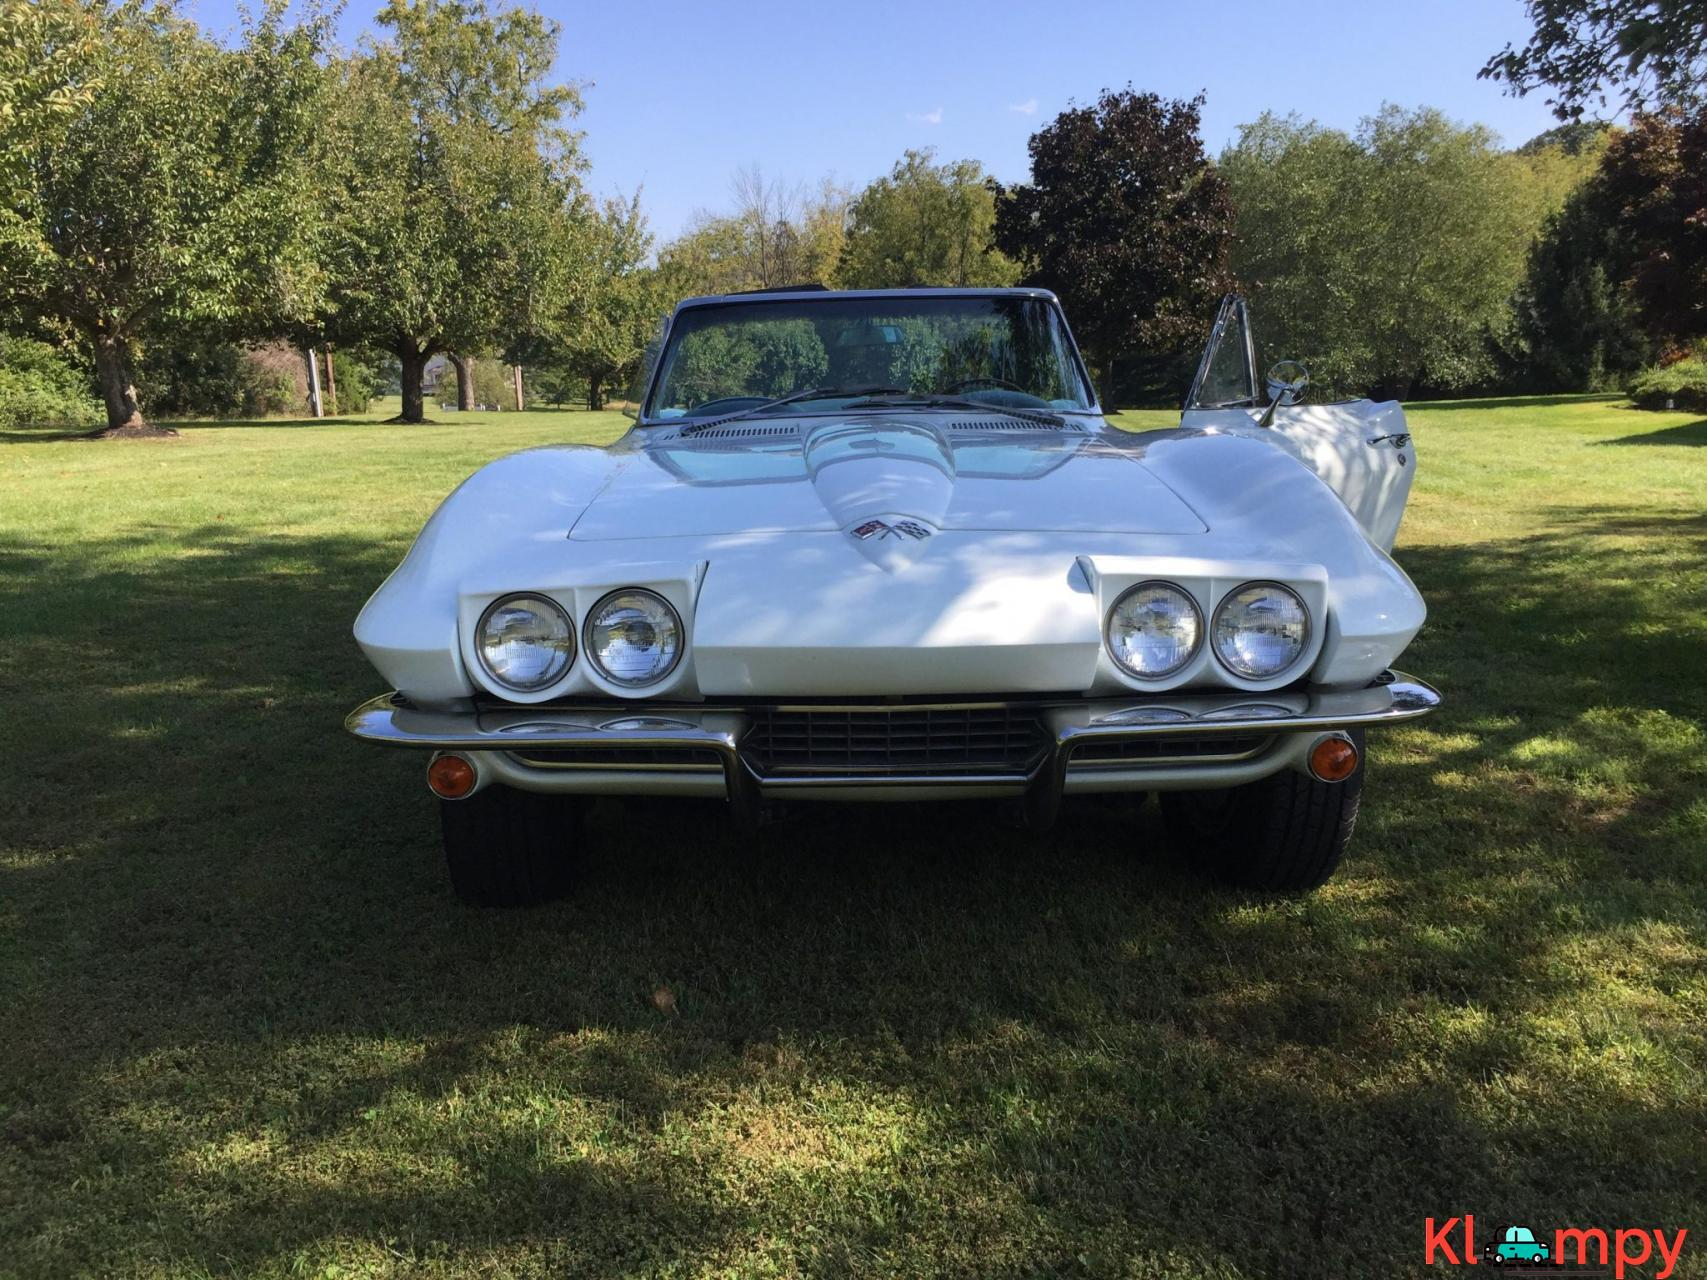 1965 Chevrolet Corvette 327 Convertible V8 - 8/20